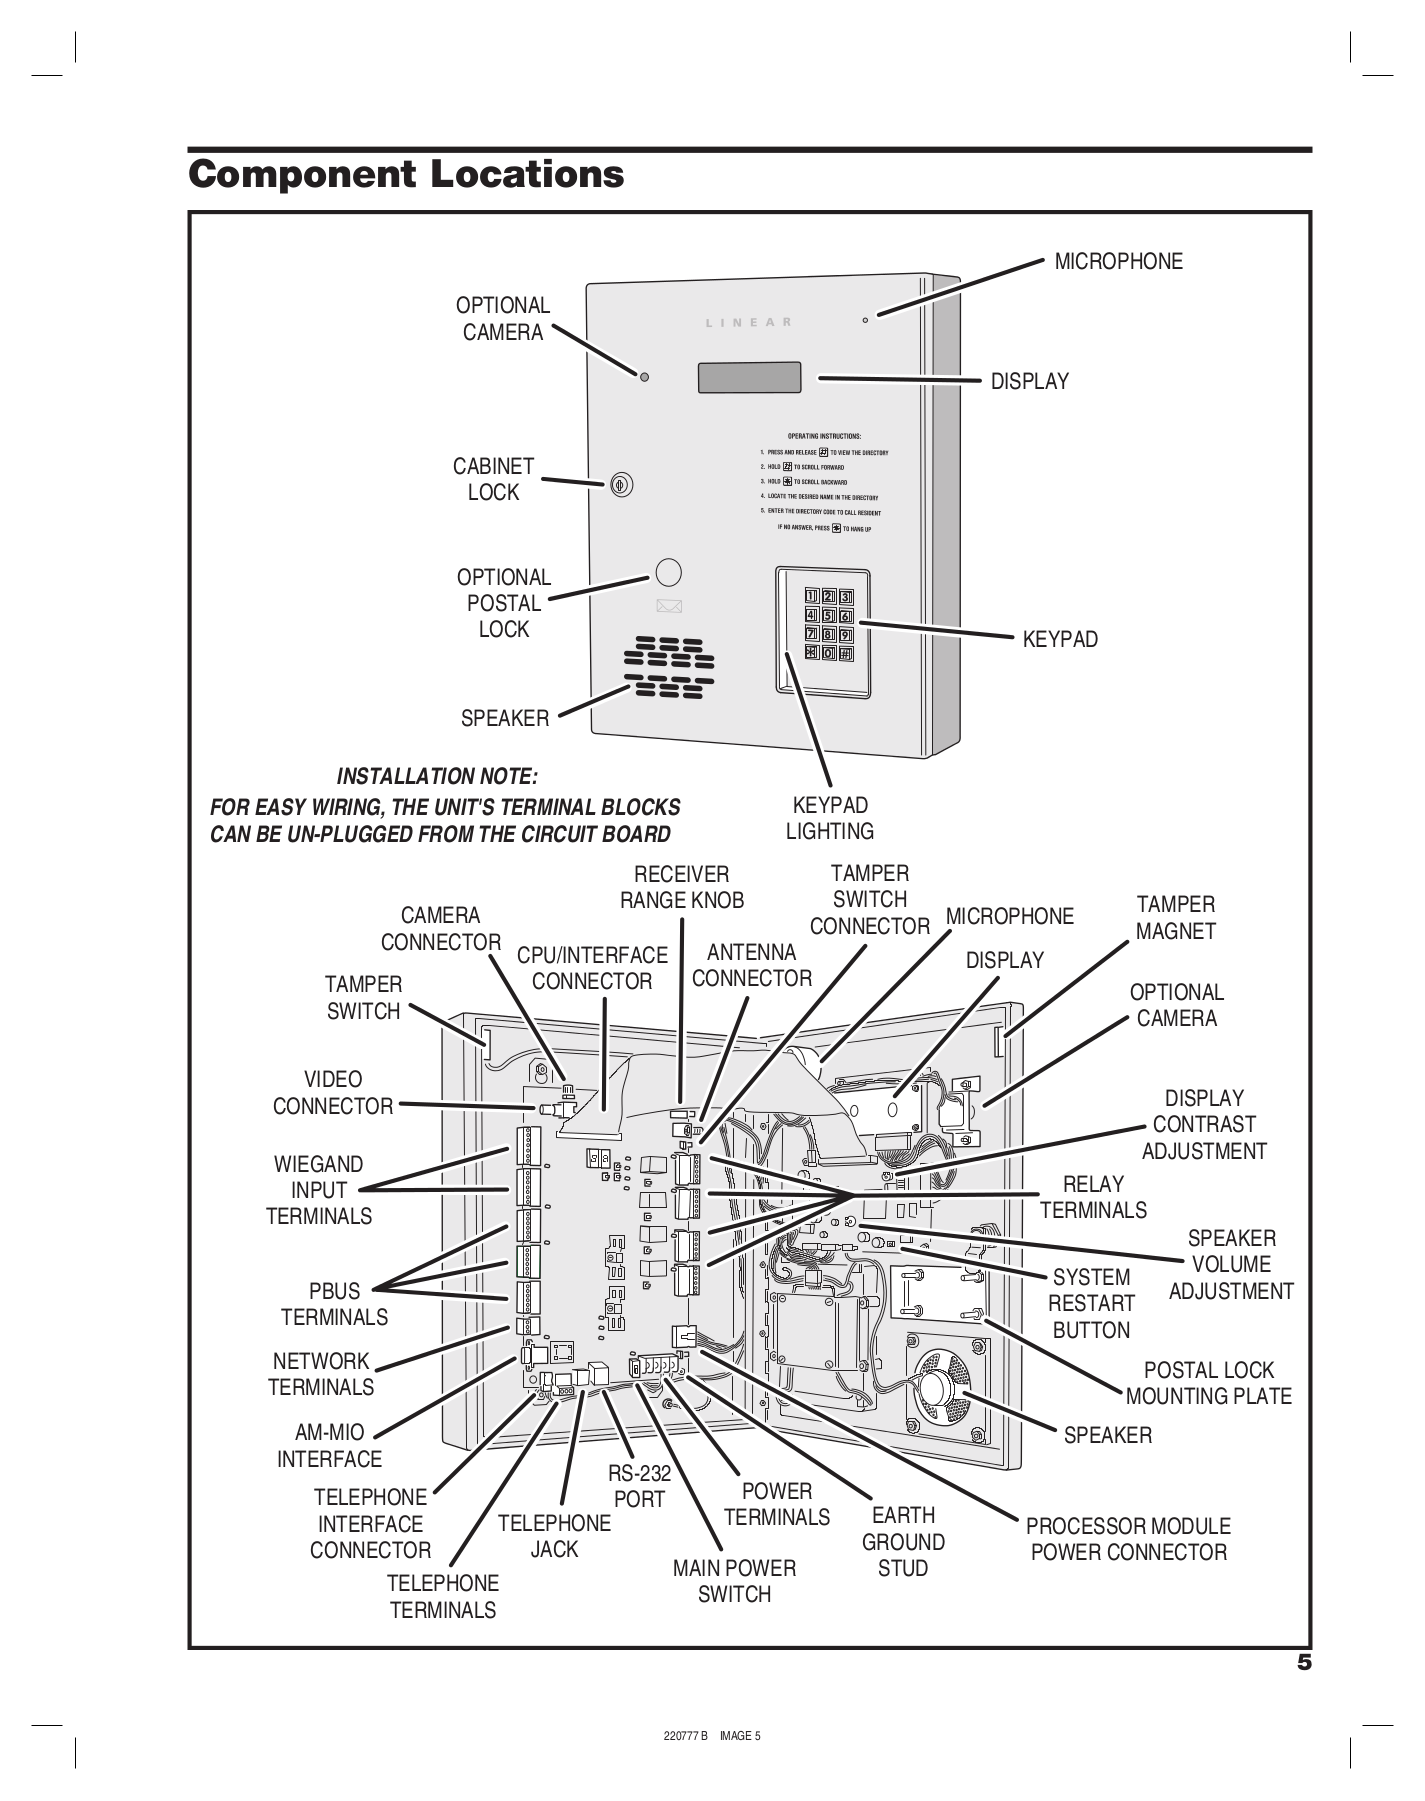 Linear_AE 1000_Manual_Commercial_Access_Control_up_to_4_Gate_Entry.pdf 4 pdf manual for philips radio ae1000  at webbmarketing.co